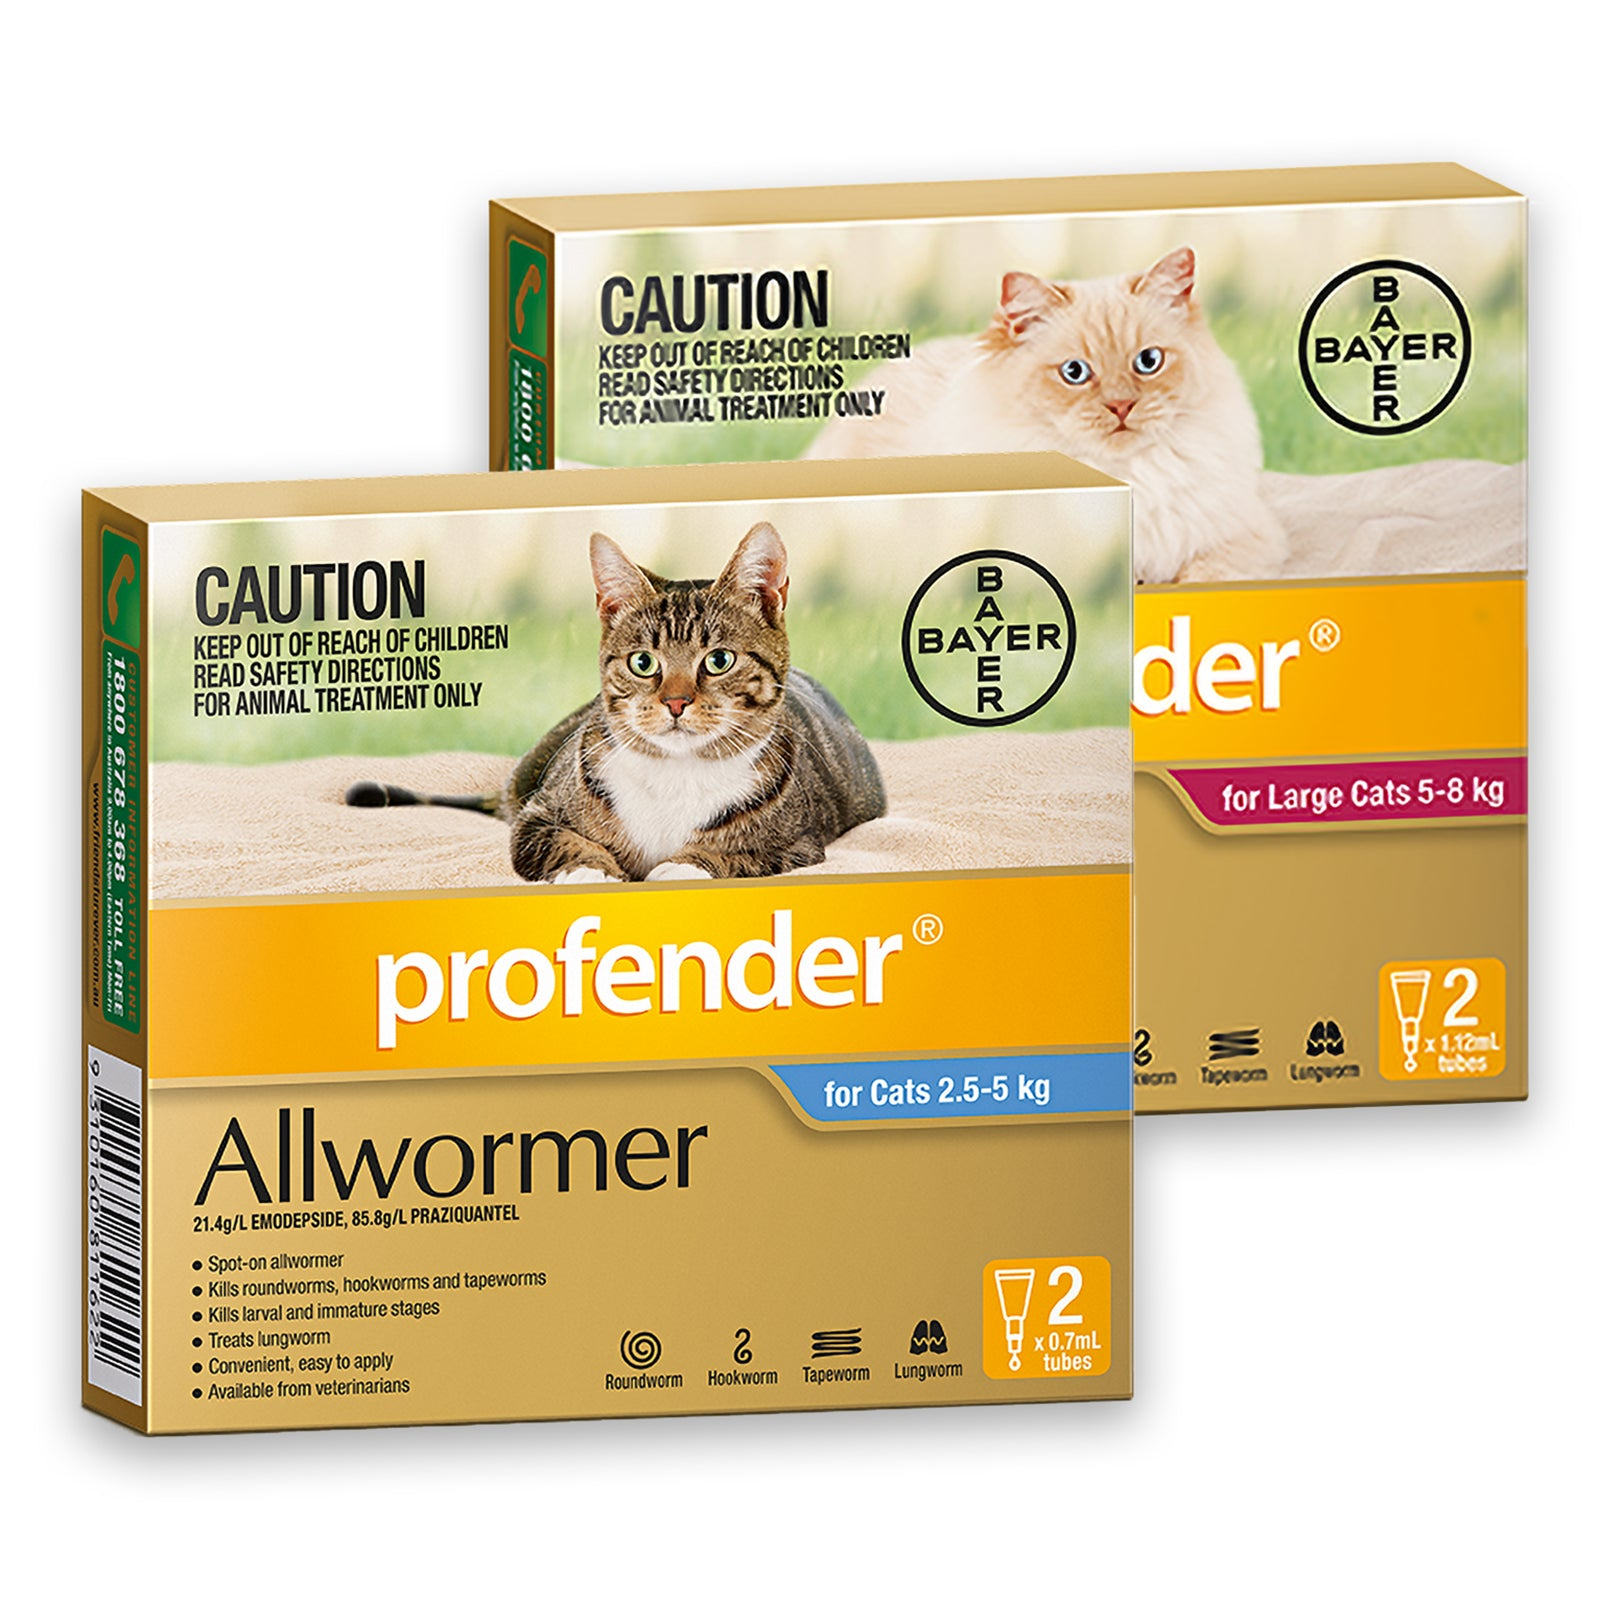 Profender for Cats